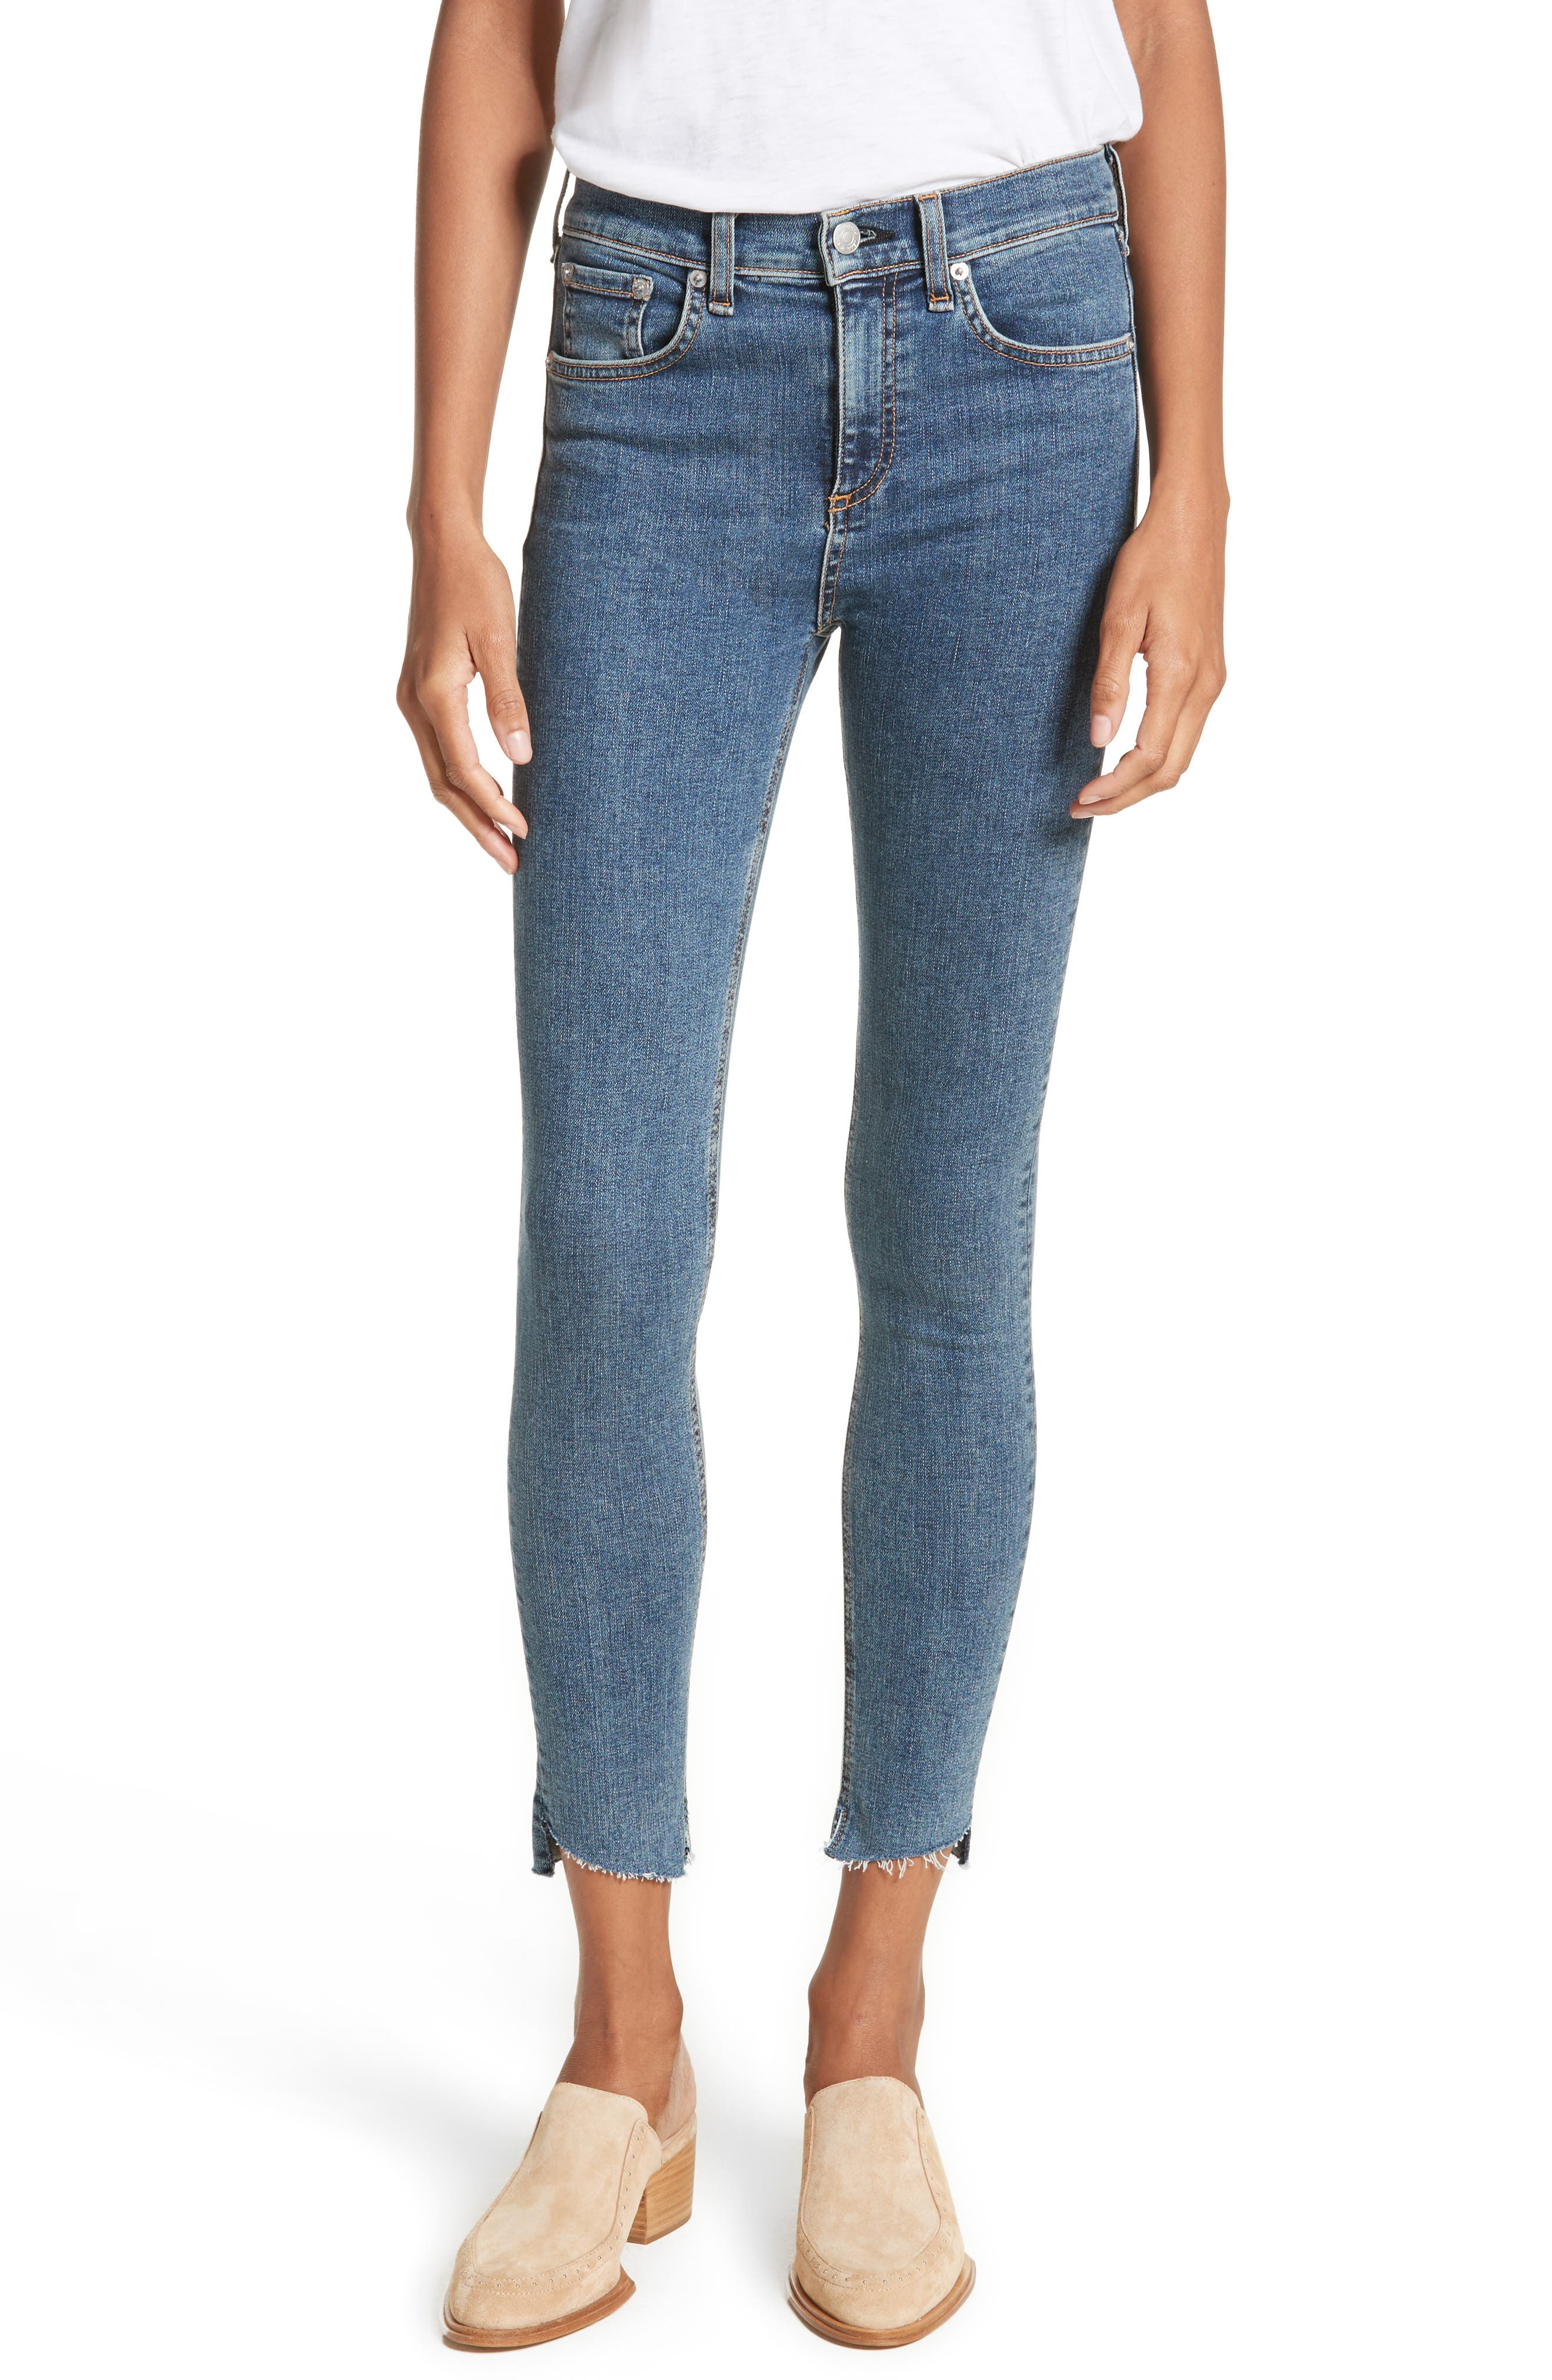 Alternate Image 1 Selected - rag & bone/JEAN High Waist Ankle Skinny Jeans (Clean Commodore)